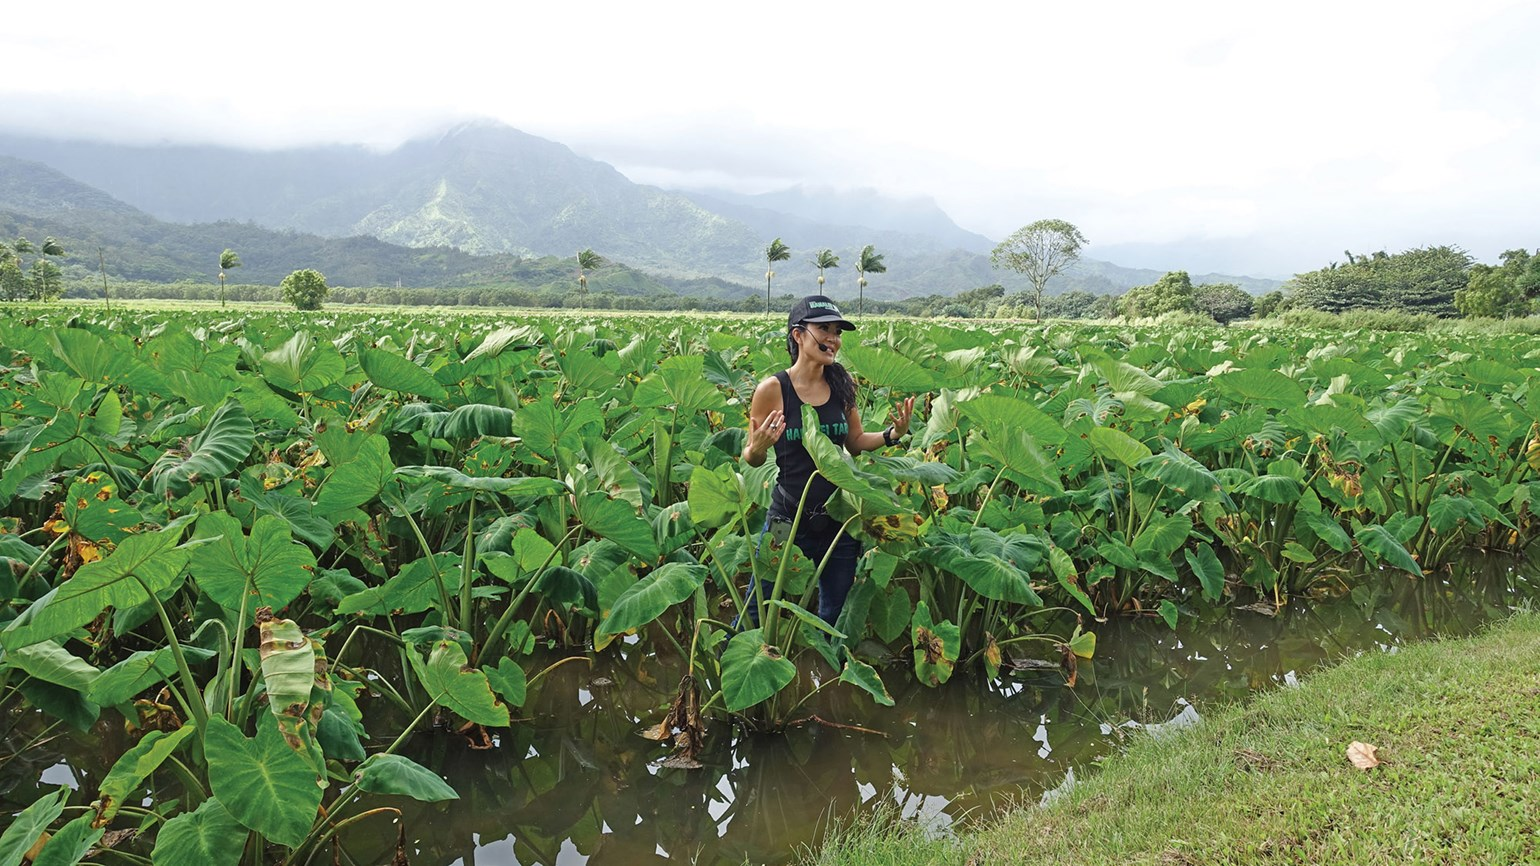 Local ingredients raise Kauai's food game